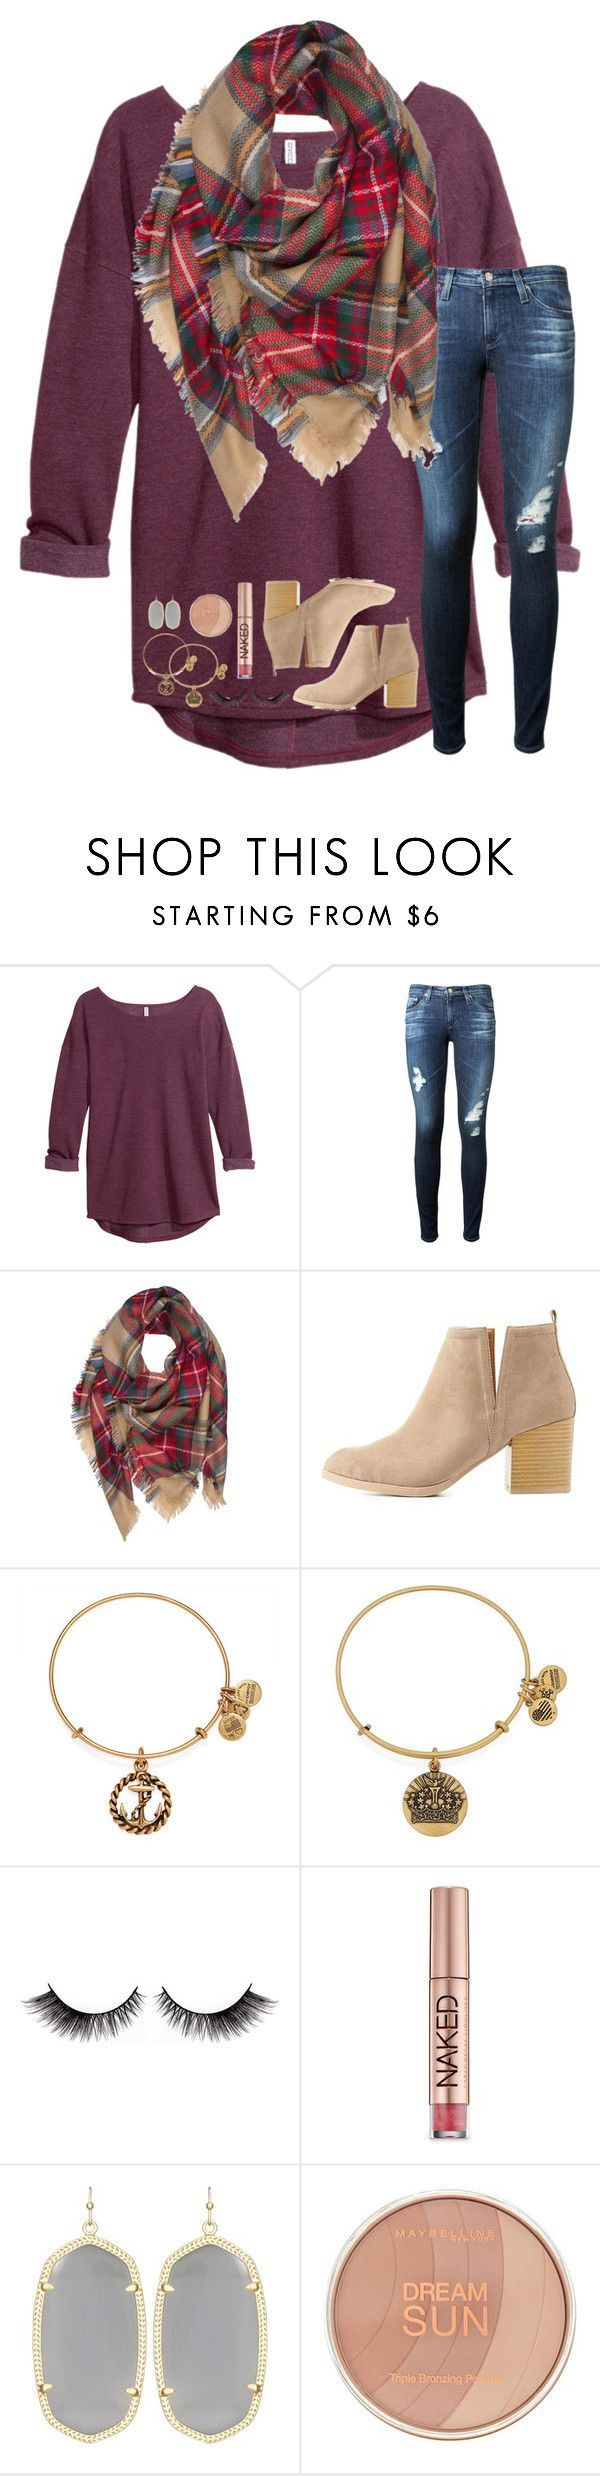 """""""I feel so much better//rtd!!"""" by lindsaygreys ❤️ liked on Polyvore featuring H&M, AG Adriano Goldschmied, Charlotte Russe, Alex and Ani, Urban Decay, Kendra Scott and Maybelline"""